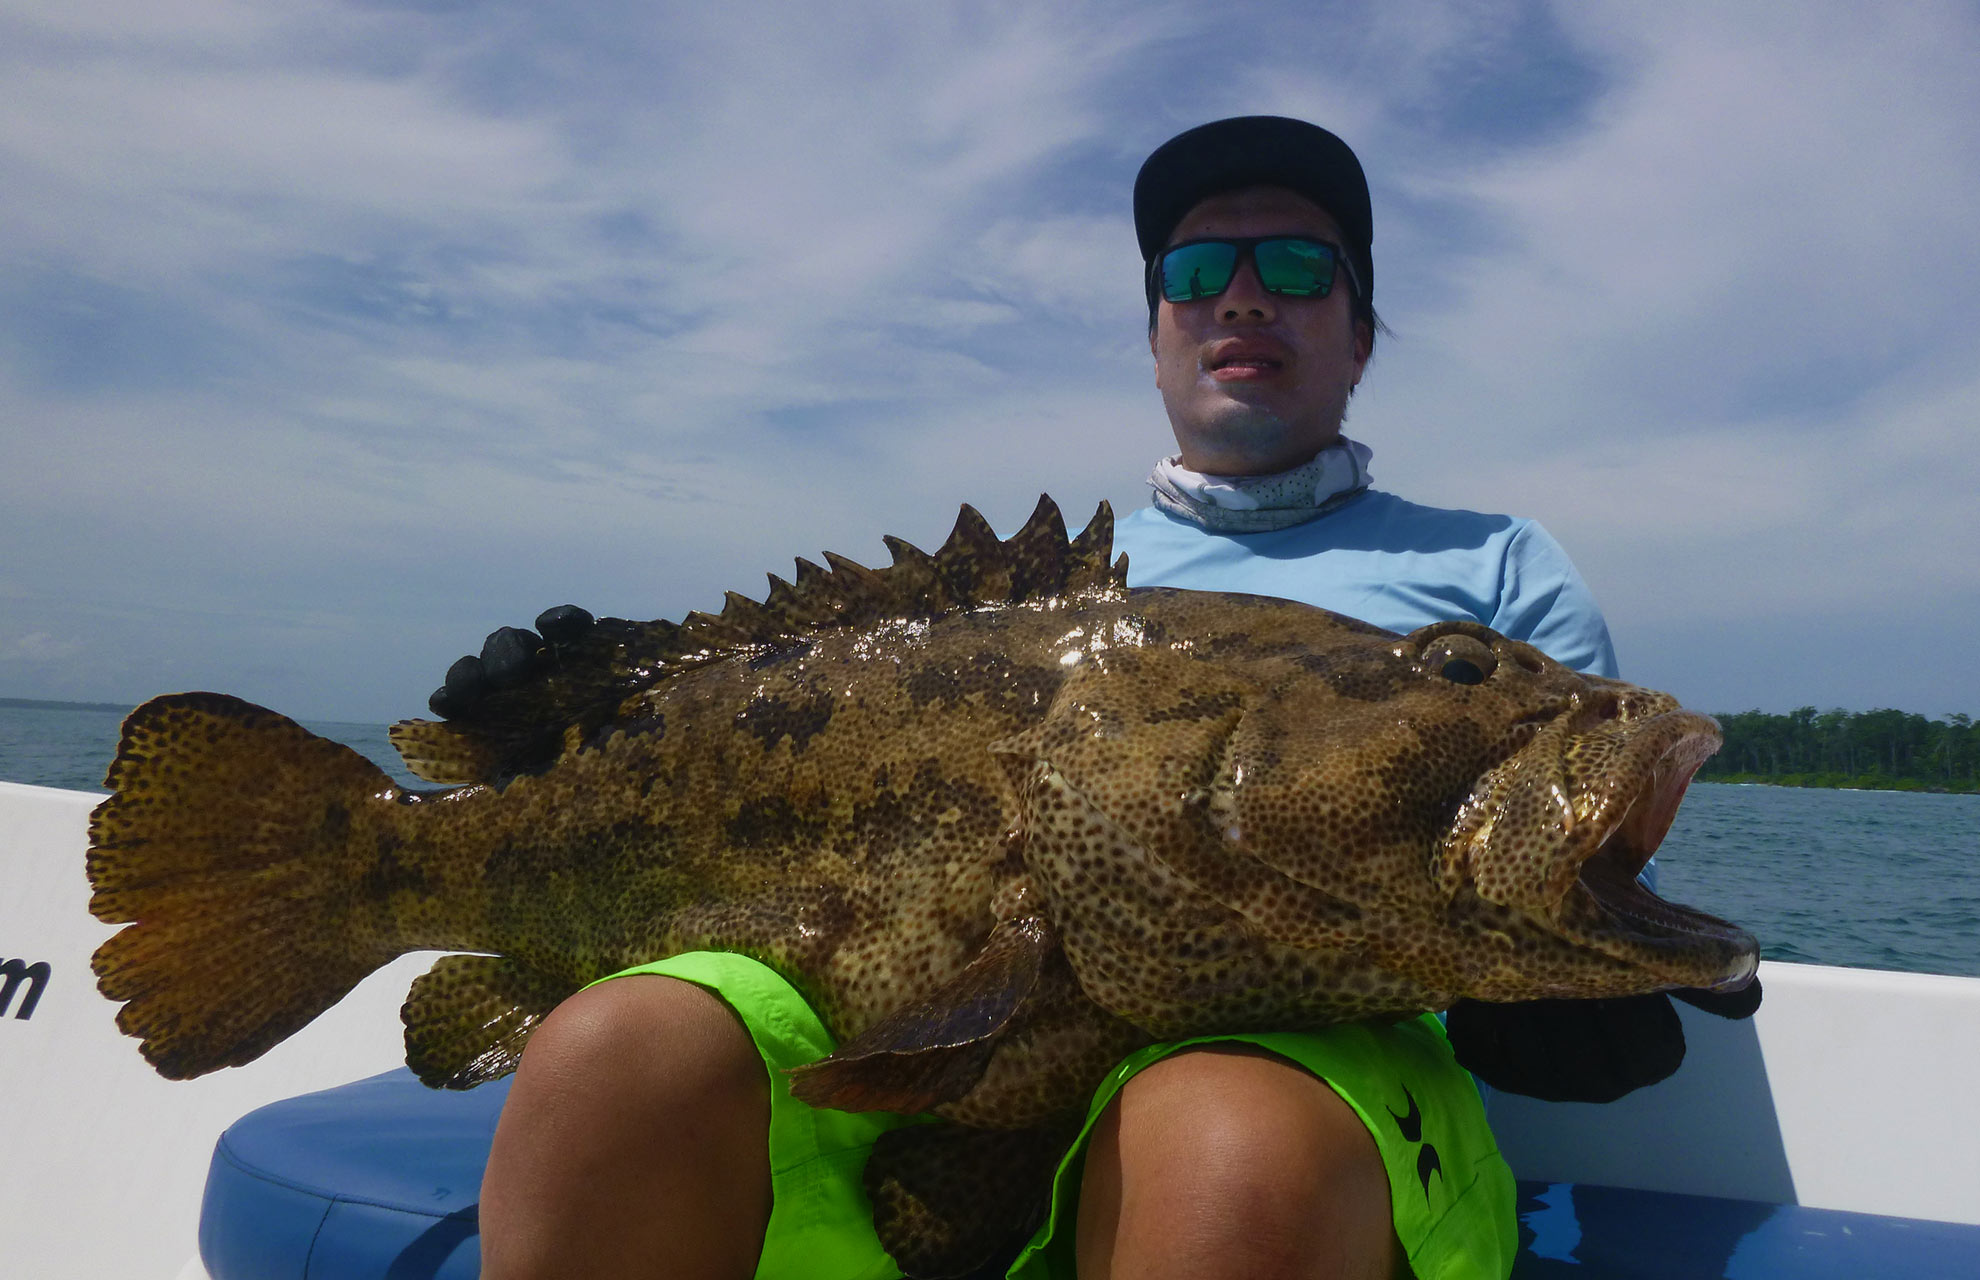 No.1_Grouper_fishing_popping_andaman_shimano-stella_gamefishingasia_boat_big-fish_gtpopping_boat-charter